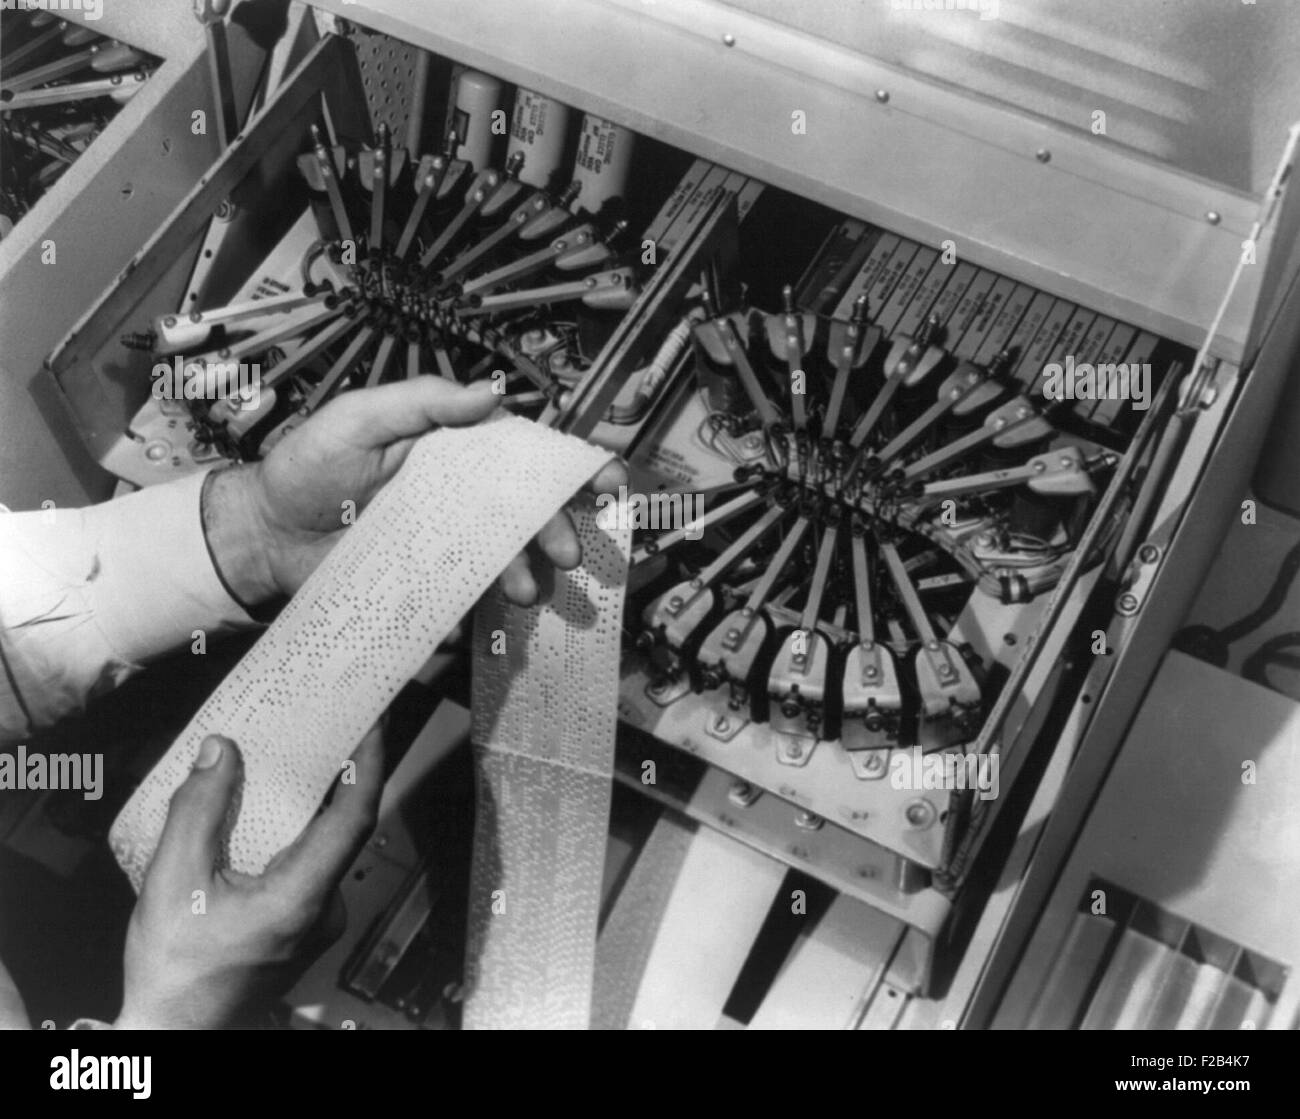 Tape-punching equipment for the automatic message accounting system at Bell Telephone laboratories. 1949. - (BSLOC - Stock Image